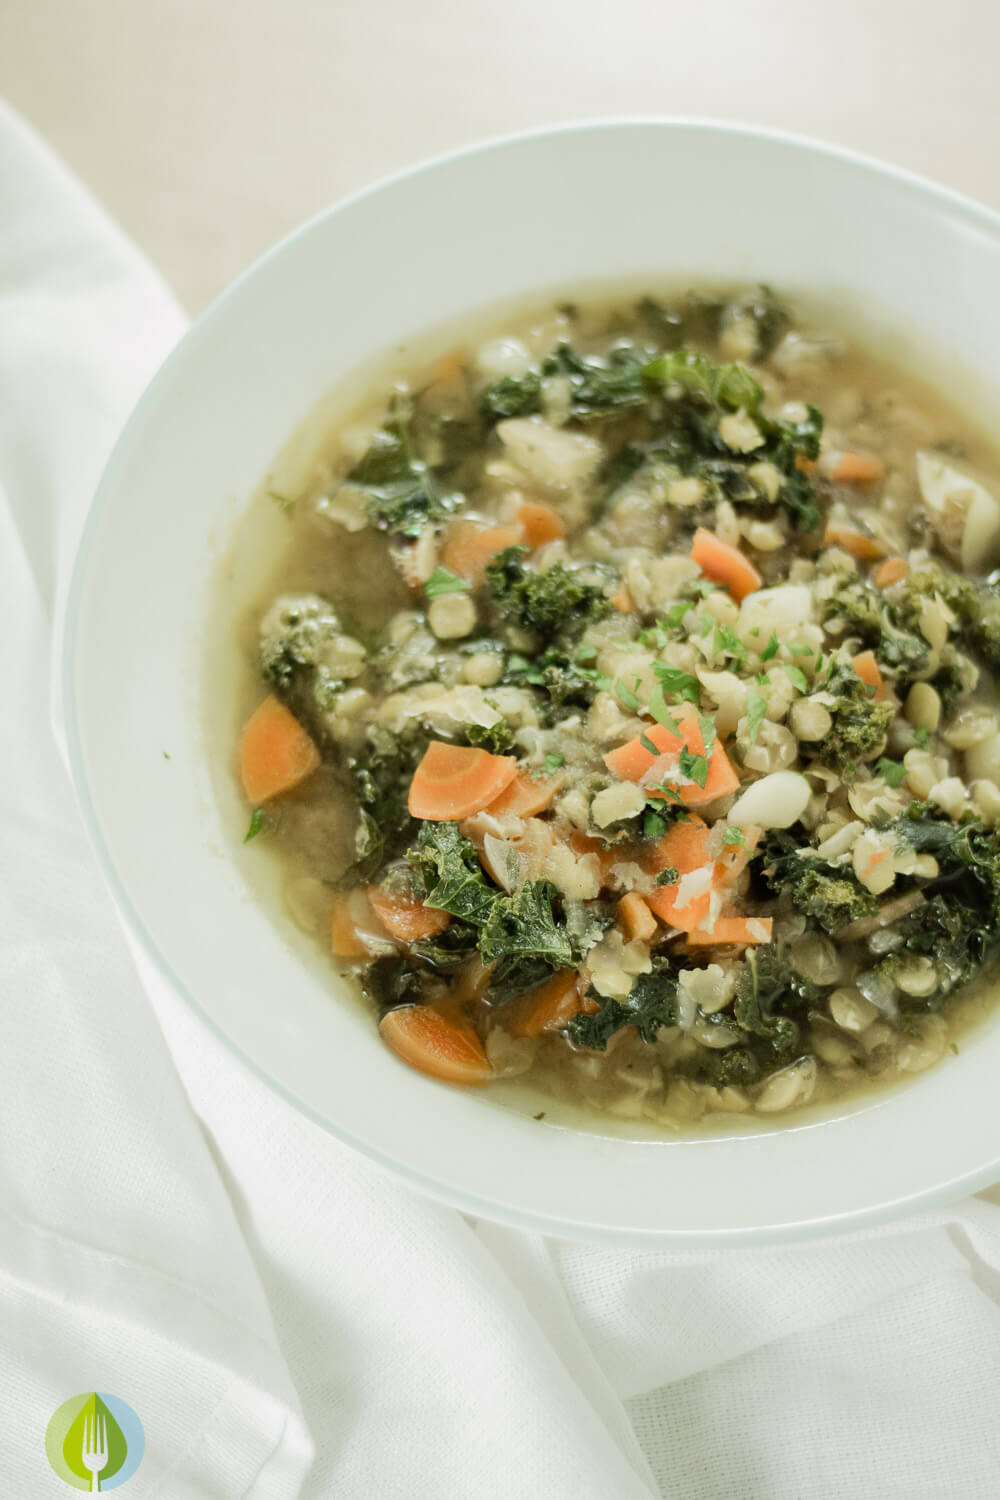 Lemony Split Pea and Kale Soup